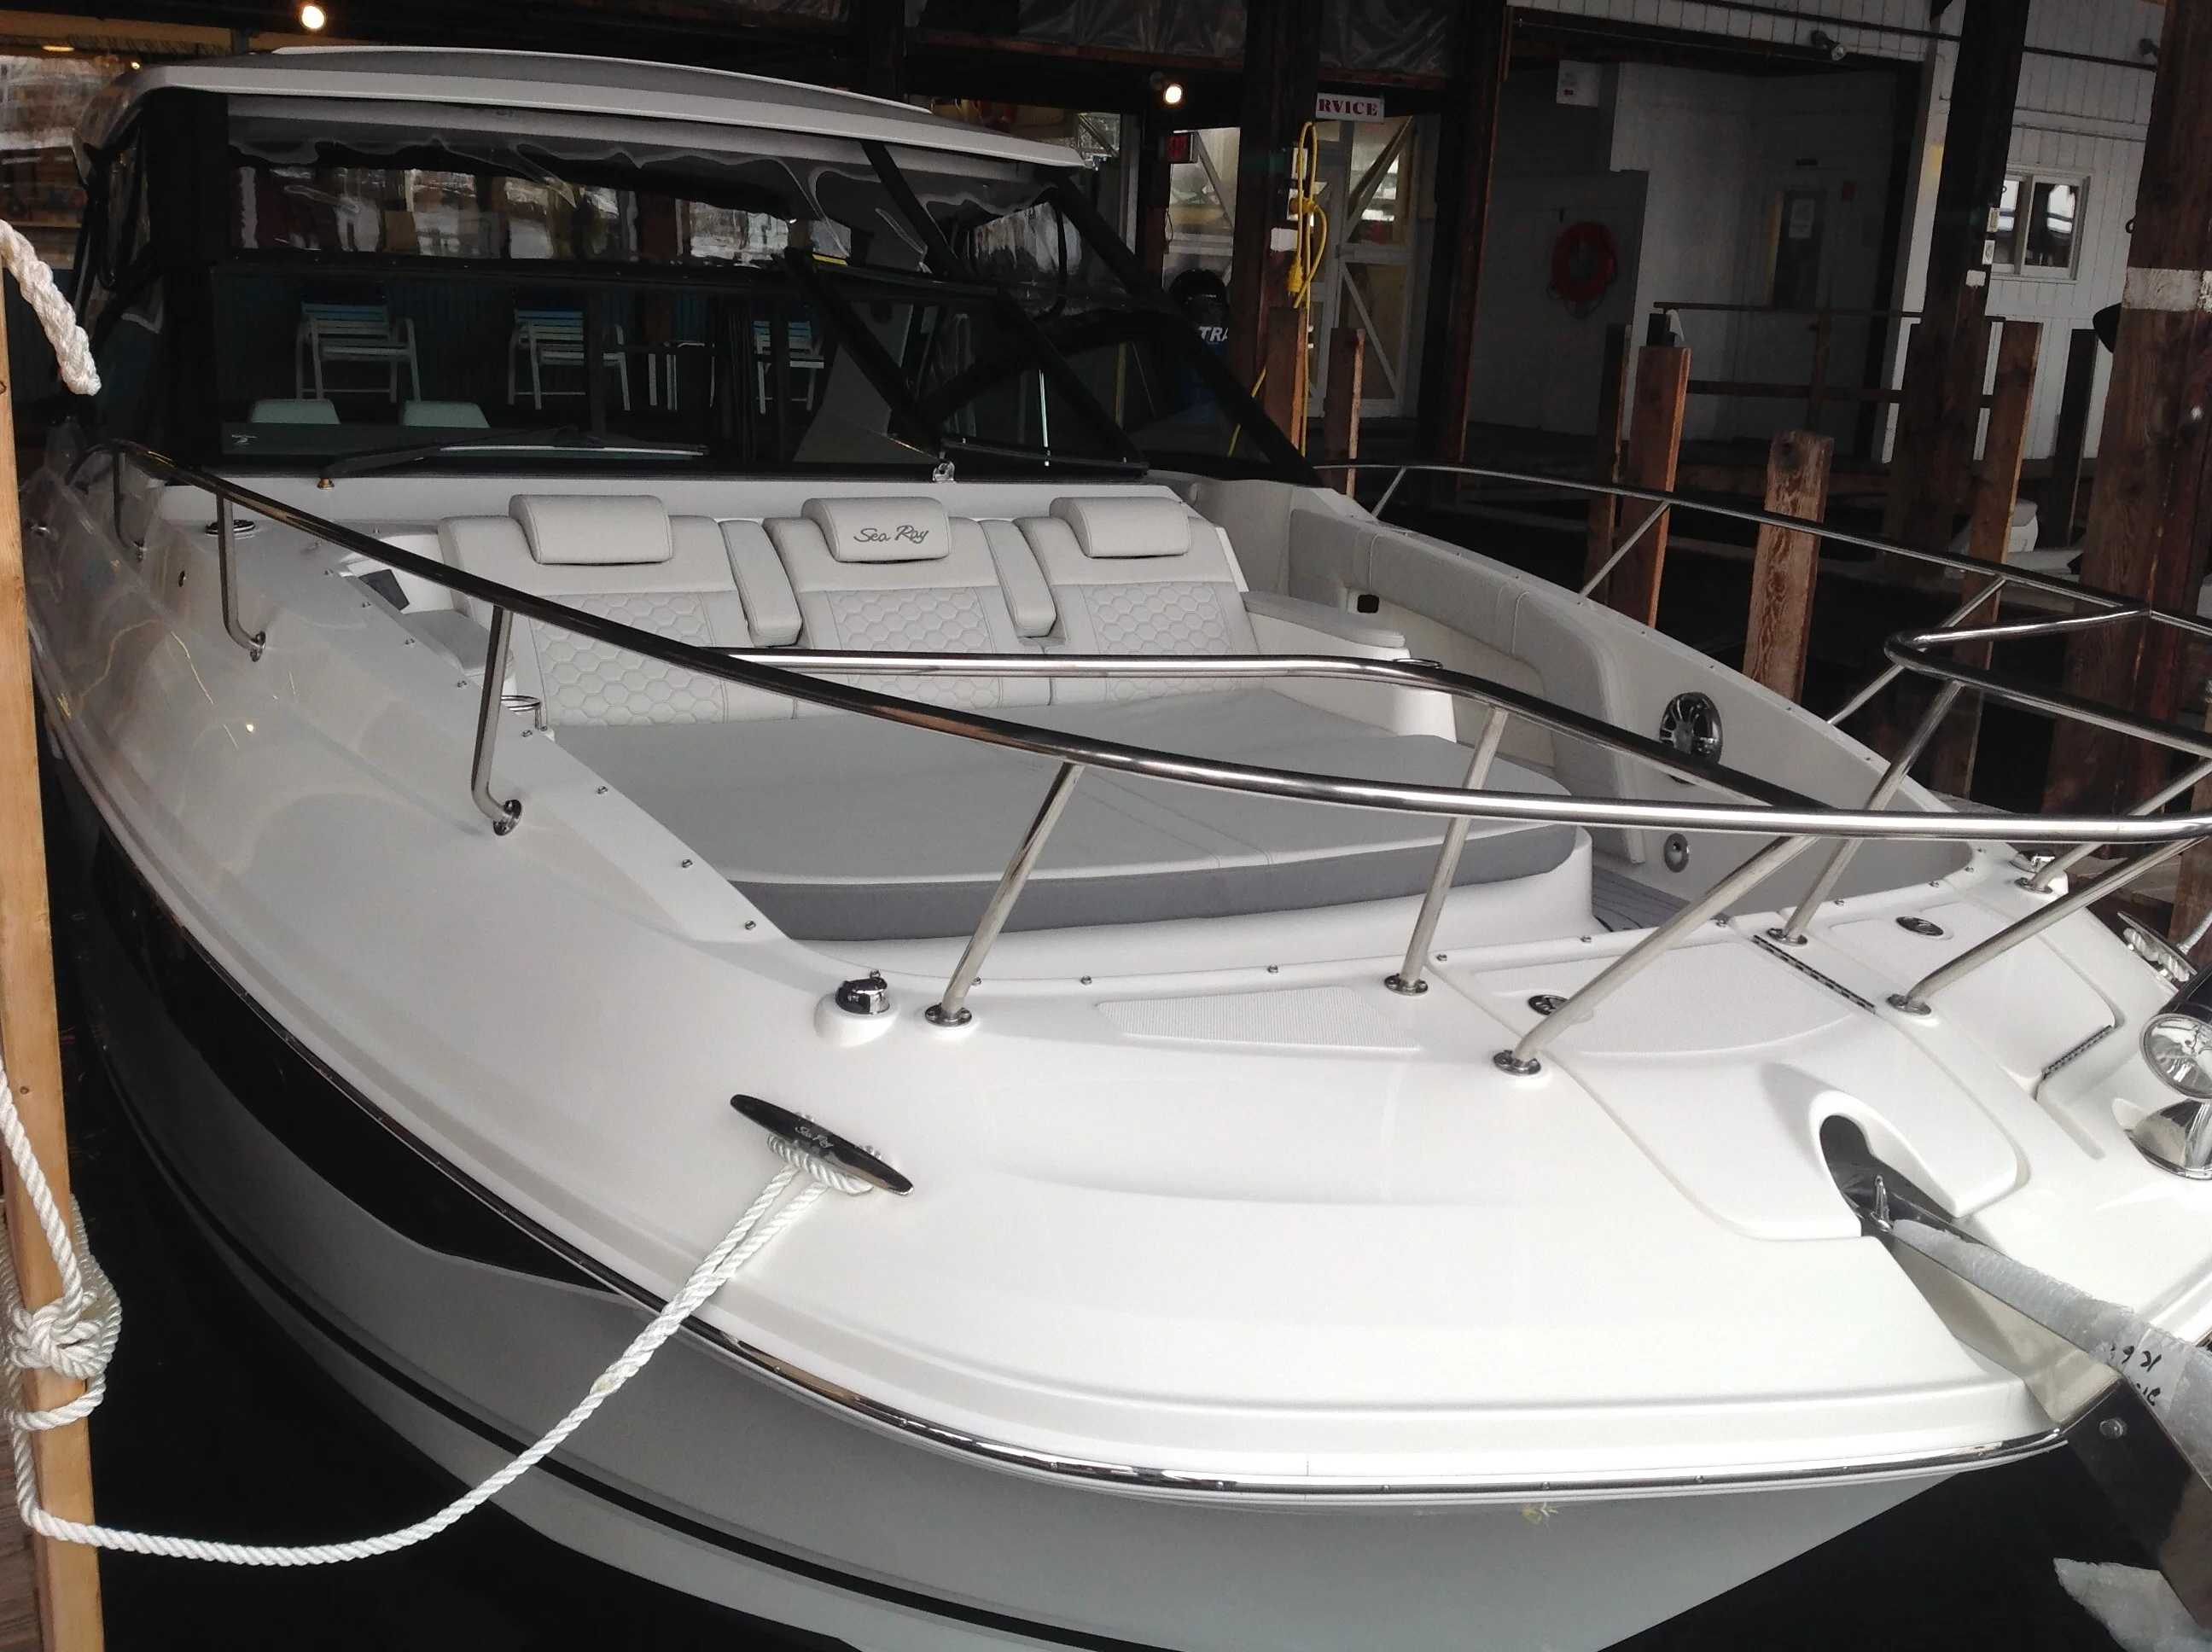 2021 Sea Ray boat for sale, model of the boat is 320 Sundancer & Image # 5 of 31